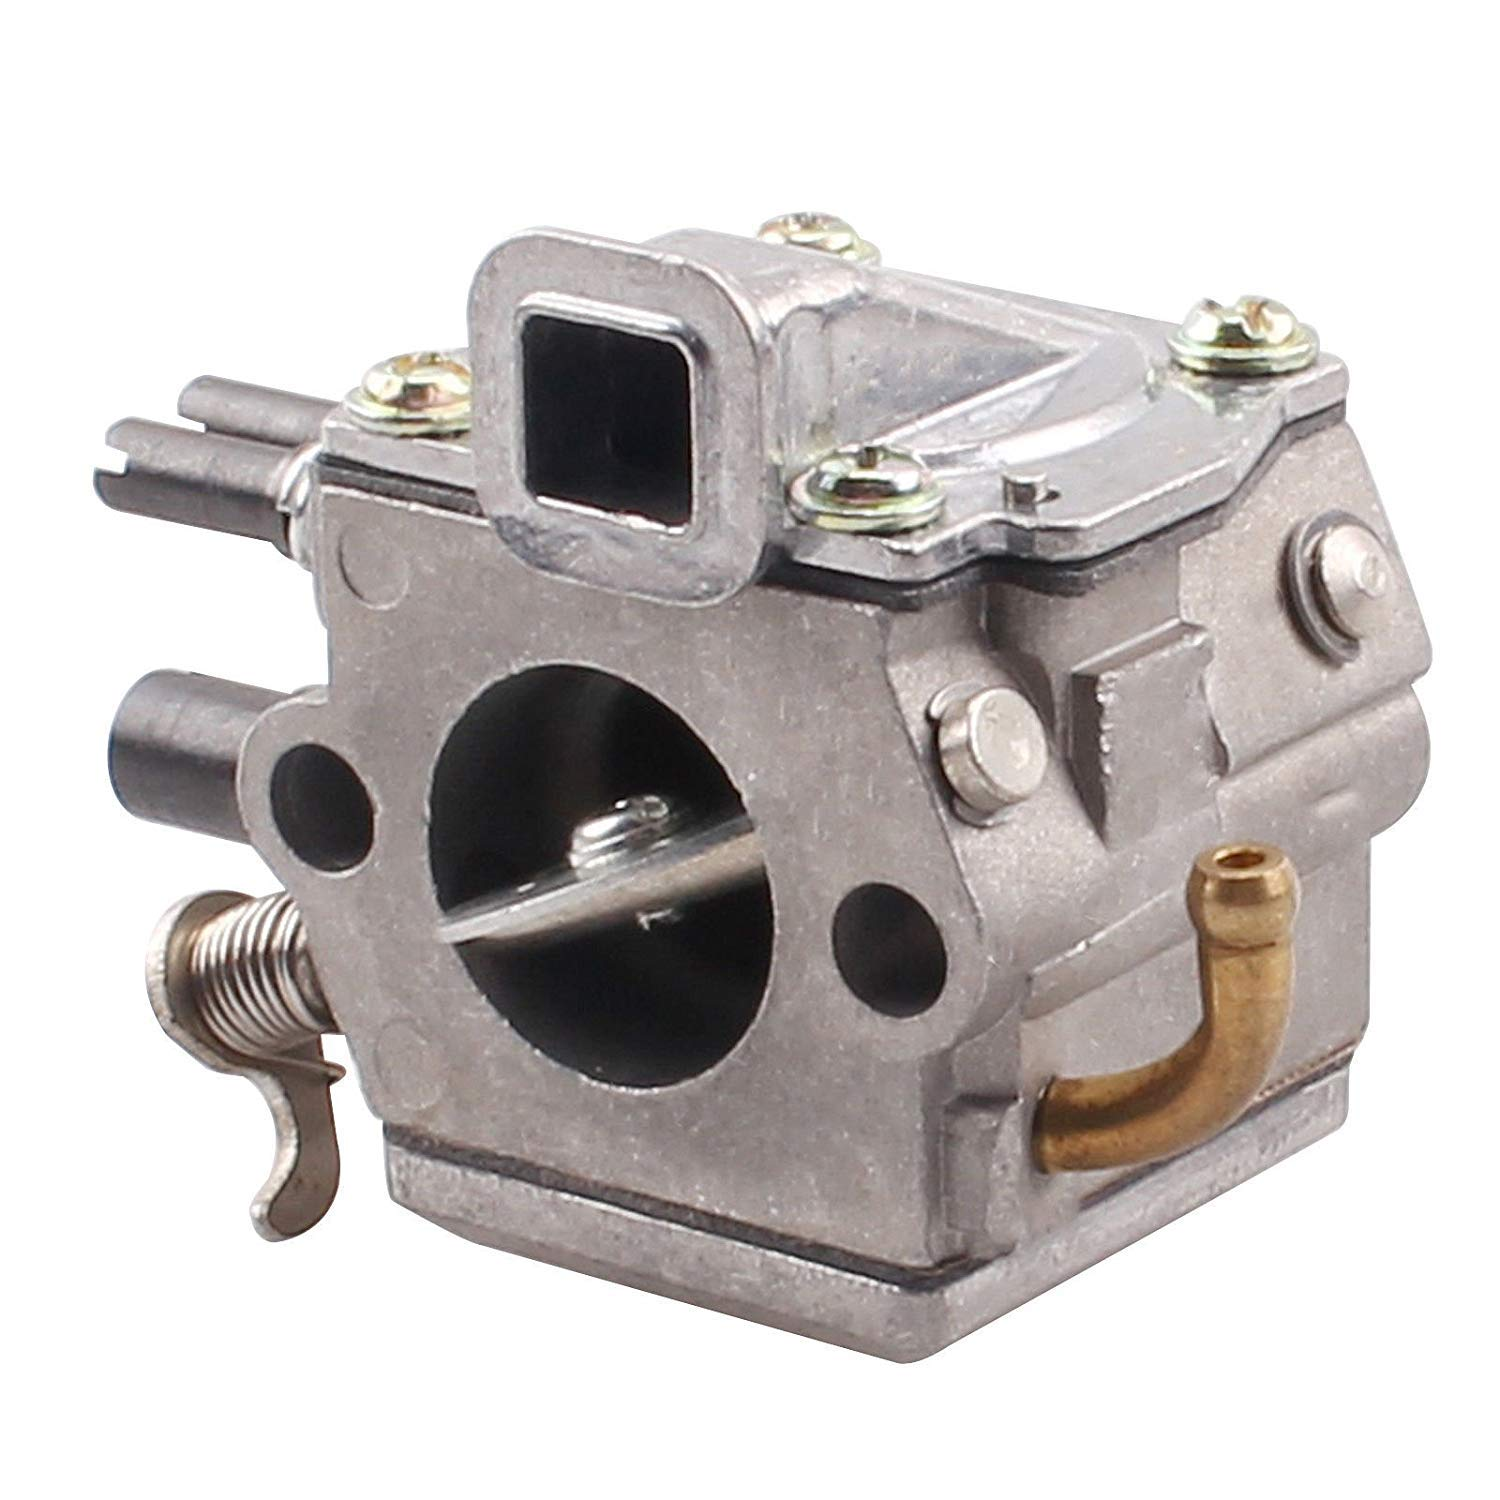 WANWU Carburettor carb Spare Parts for Stihl 034 036 MS340 MS360 ChainSaw Replaces ZAMA C3A-S39B